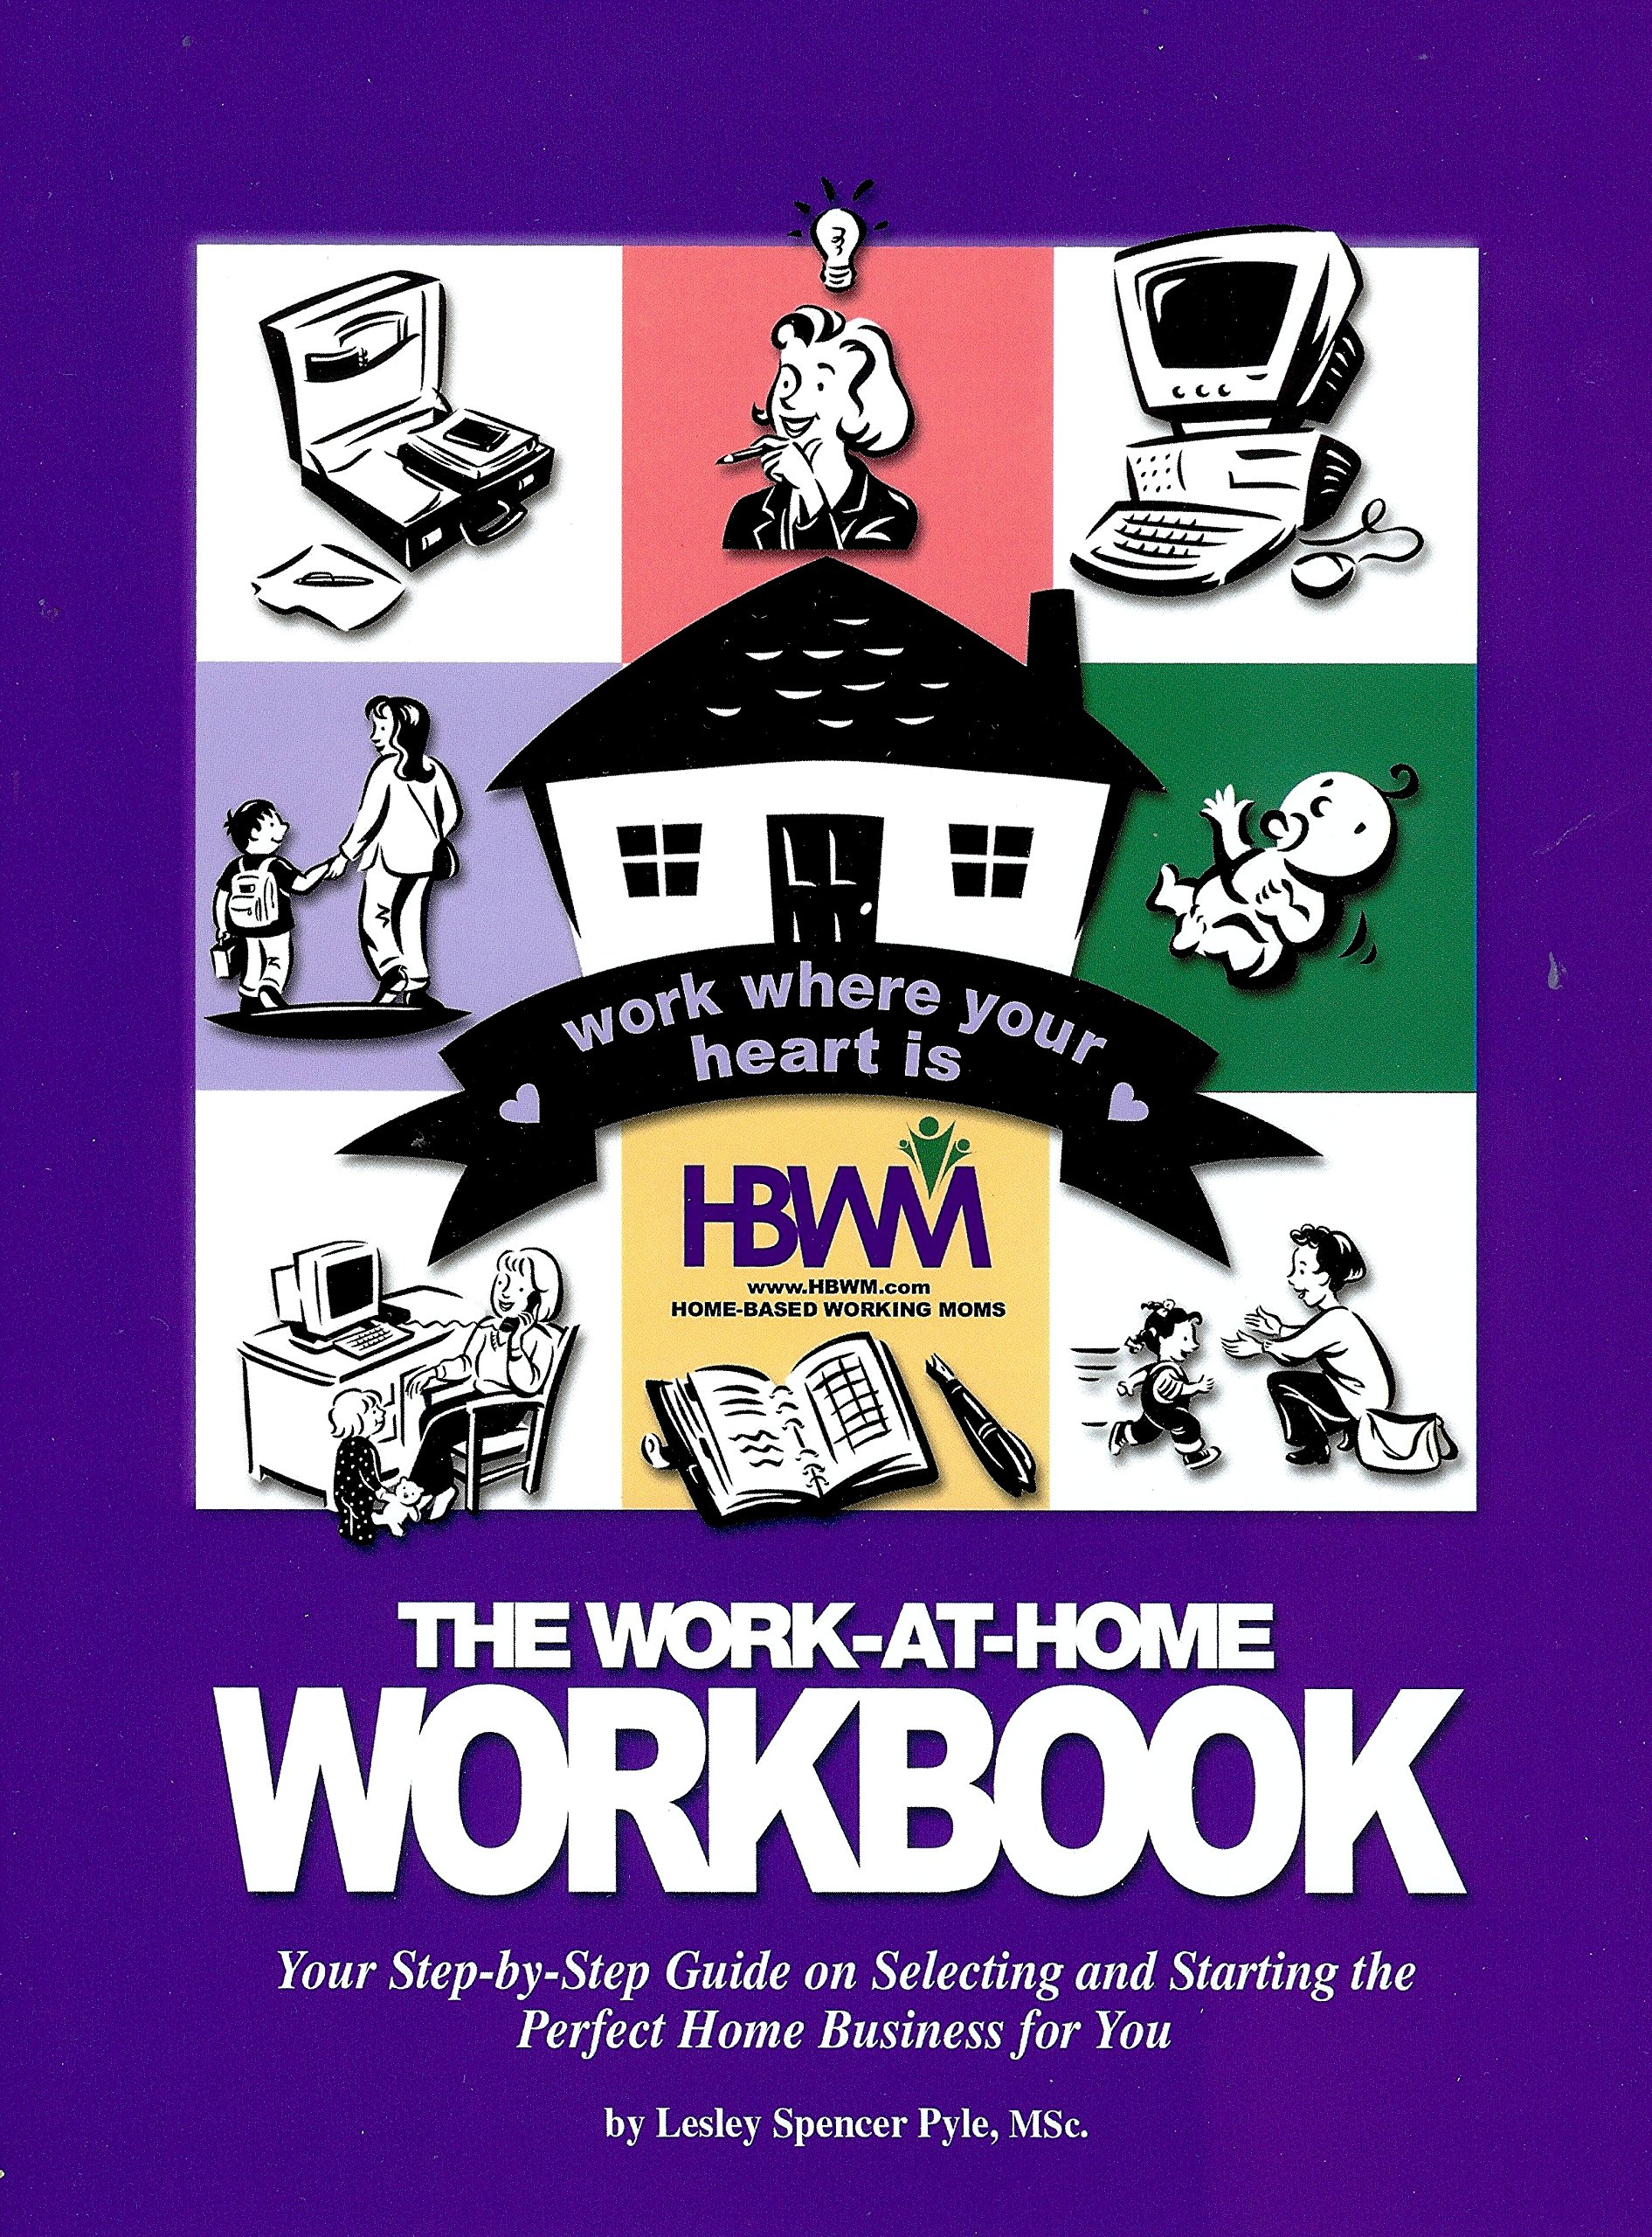 The Work-at-Home Workbook: Your Step-by-Step Guide on Selecting and Starting the Perfect Home Business for You ebook